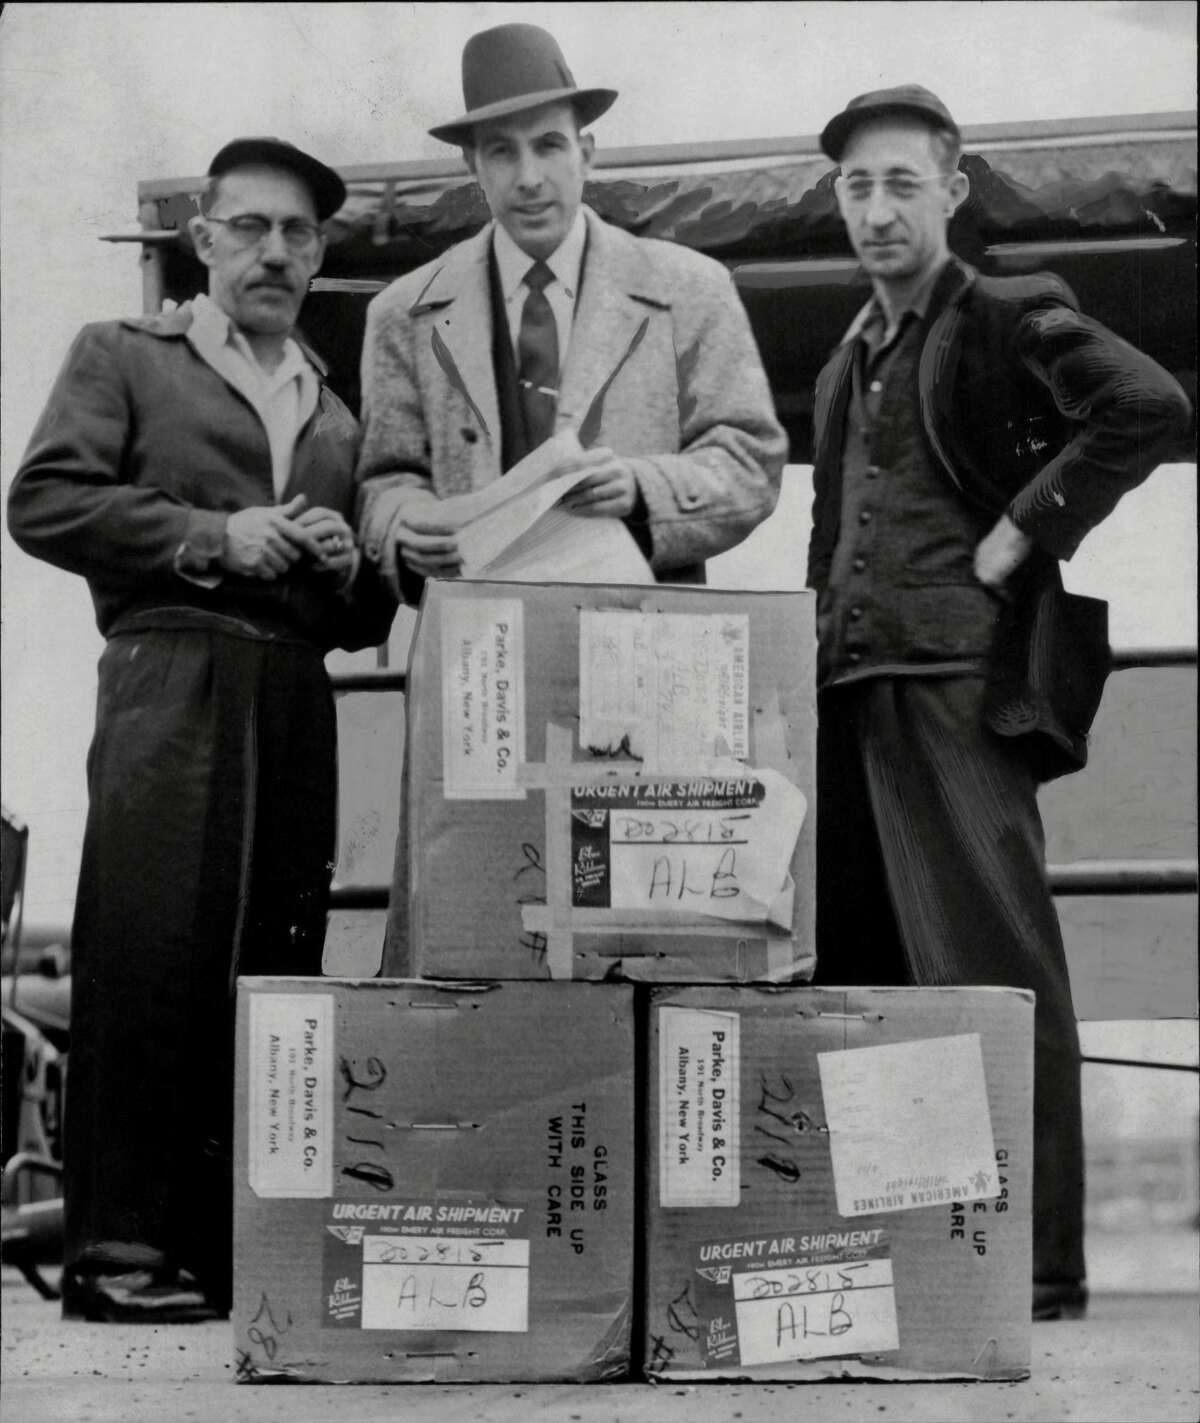 Salk Vaccine Arrives In Albany - The first commercial shipment of Salk polio vaccine arrived at Albany Airport consigned to Parke Davis & Company, 191 Broadway, Menands. The vaccine company officials said, will be distributed to druggists and physicians through regular channels. Shown receiving the shipment of three cases at the airport, left to right, are: Joseph Van Winkle, delivery agent; John V. Healy, manager of the Albany office of the Emery Air Freight Corporation, and Bernard Van Winkle, delivery agent. April 13, 1955 (Knickerbocker News Staff Photo/Times Union Archive)